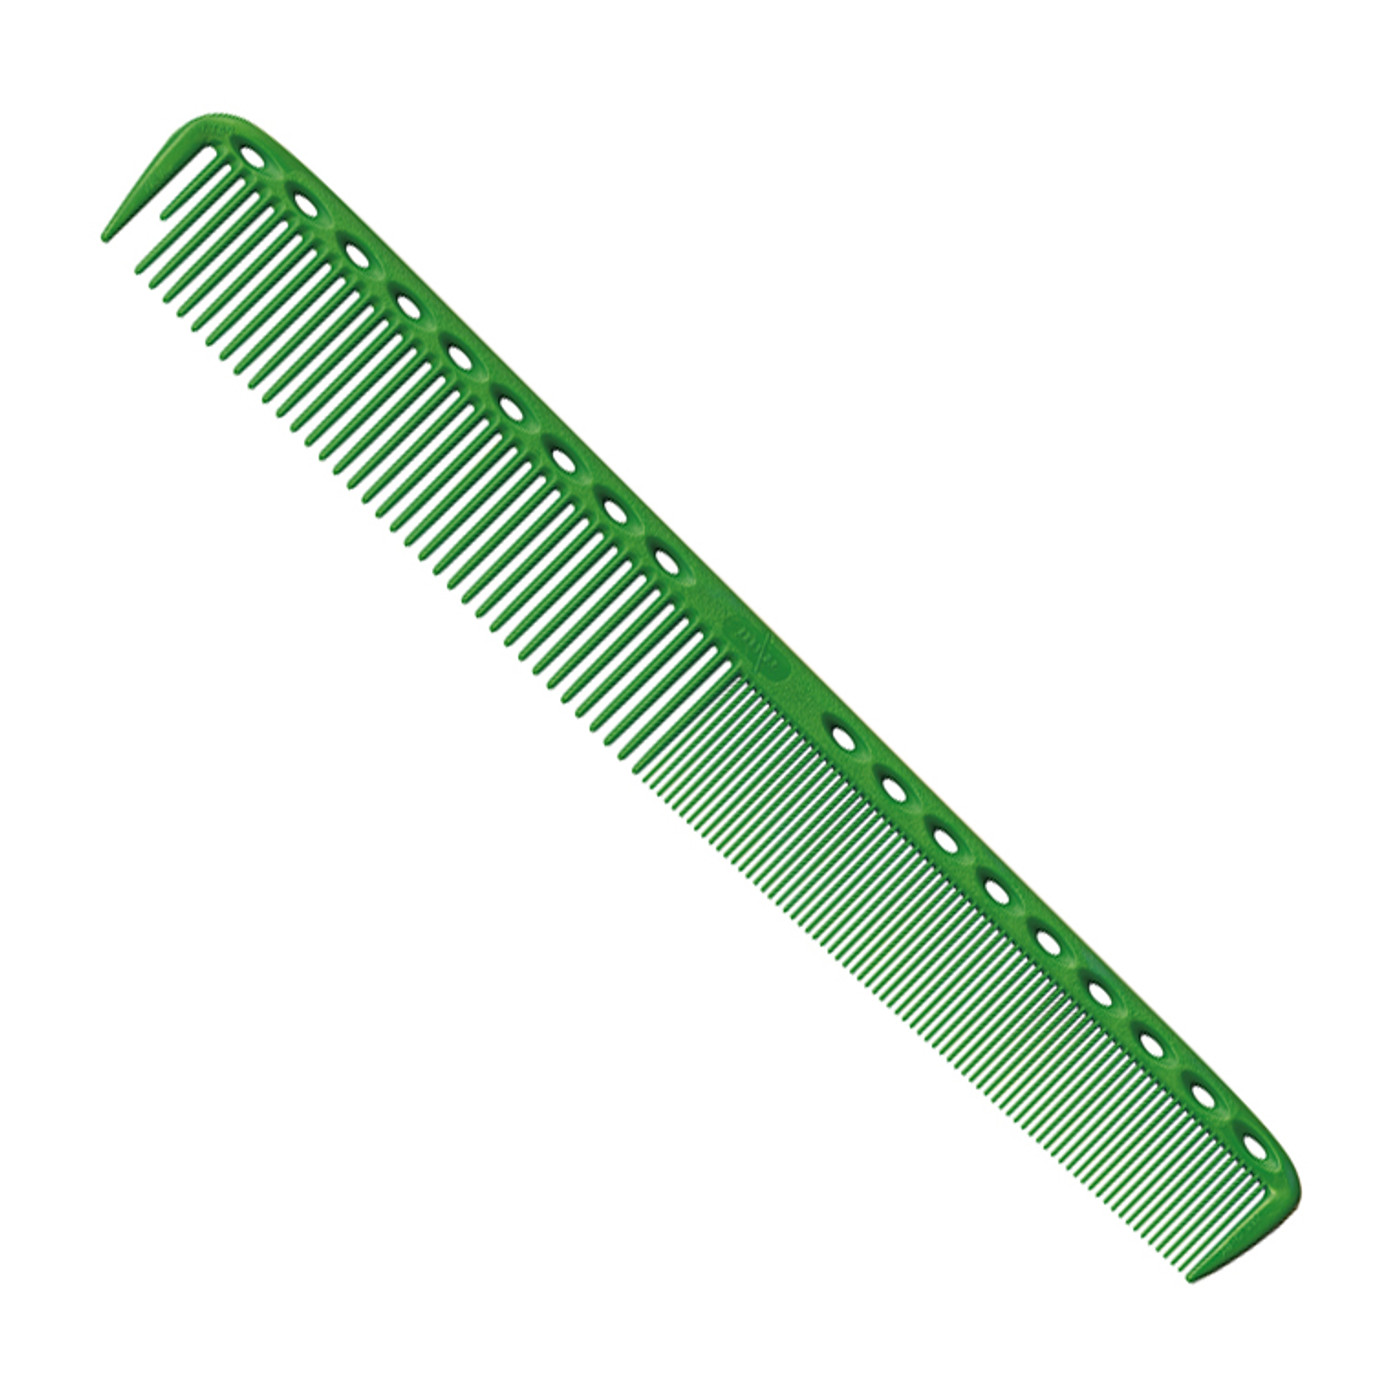 YS Park 335 Long Fine Tooth Cutting Comb - Green